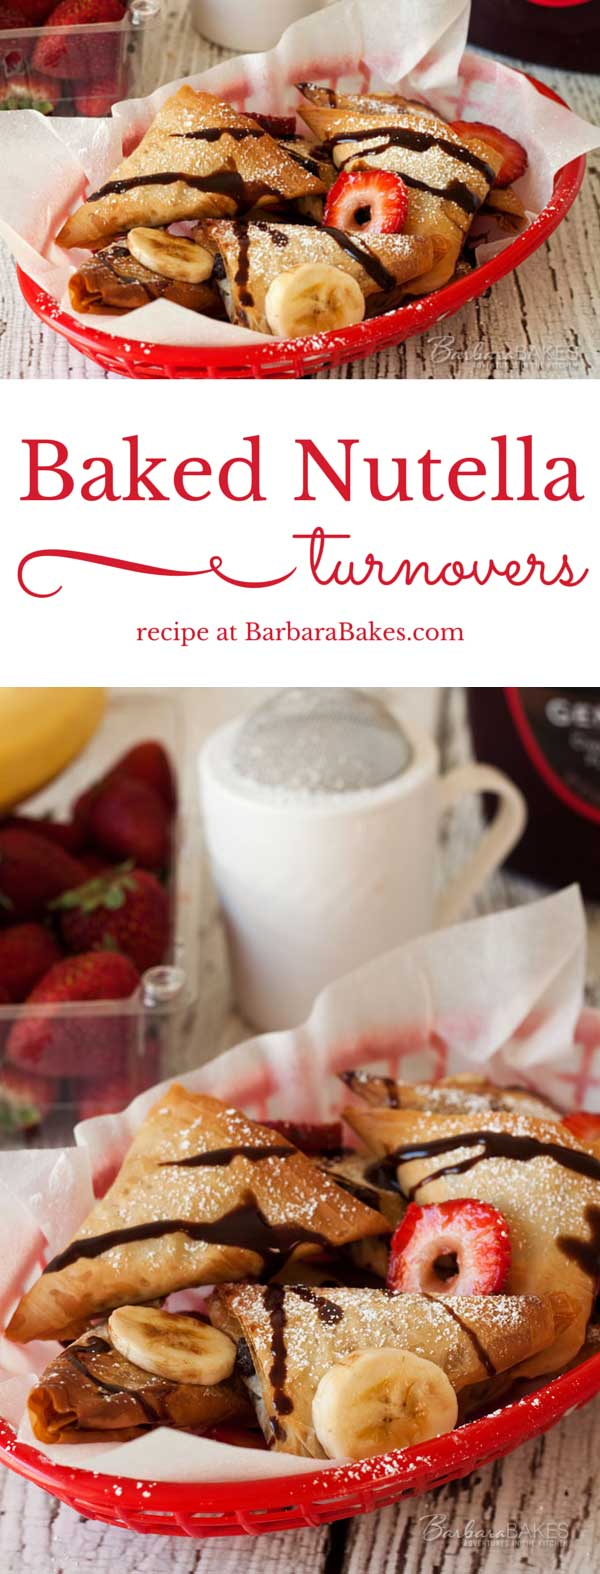 Collage of Baked Nutella Turnovers - easy to make with ready to use phyllo dough.